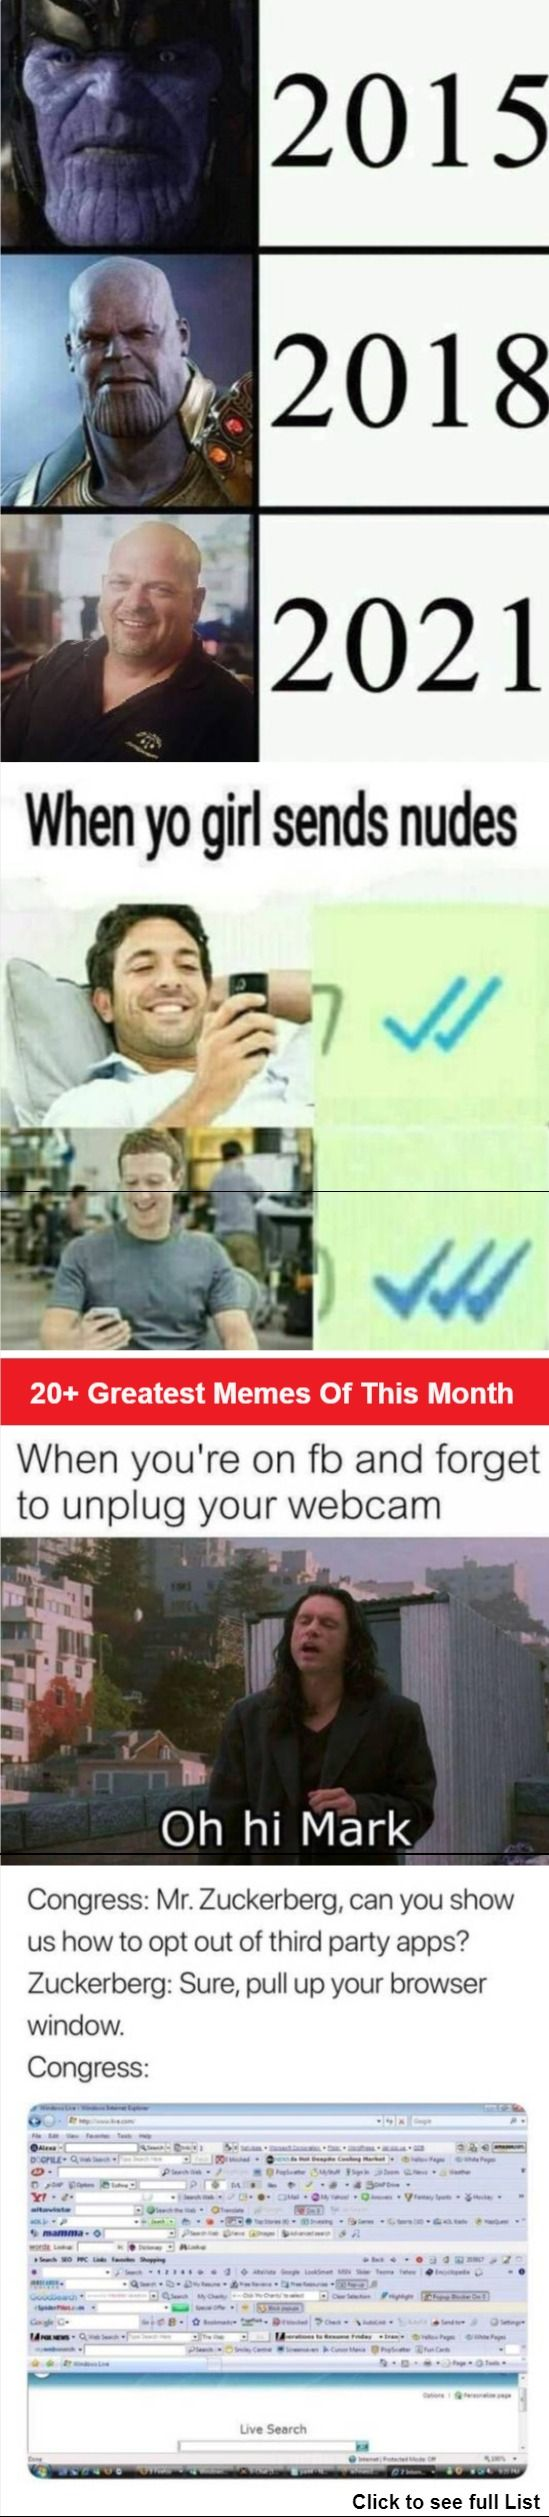 20 Greatest Memes Of This Month Ladnow Great Memes Memes Funny Memes